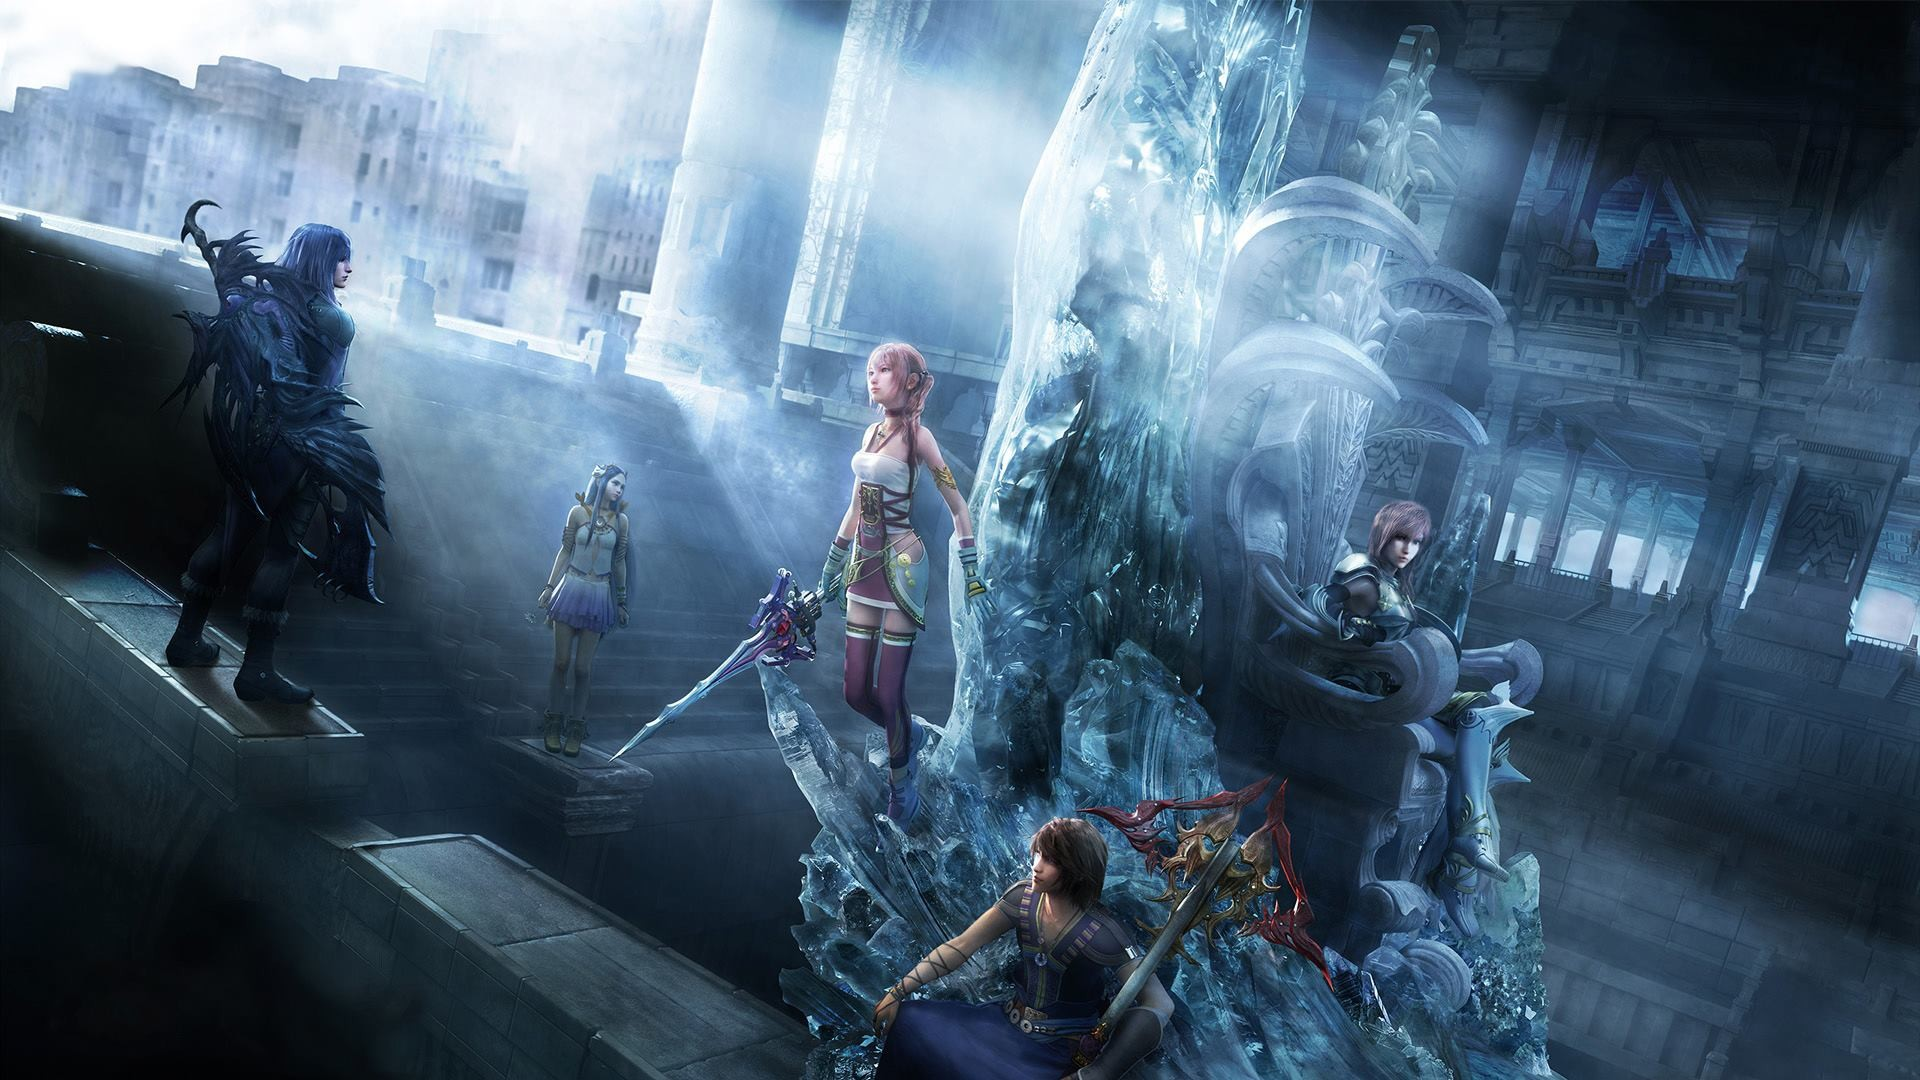 68 Final Fantasy 8 Wallpaper Hd